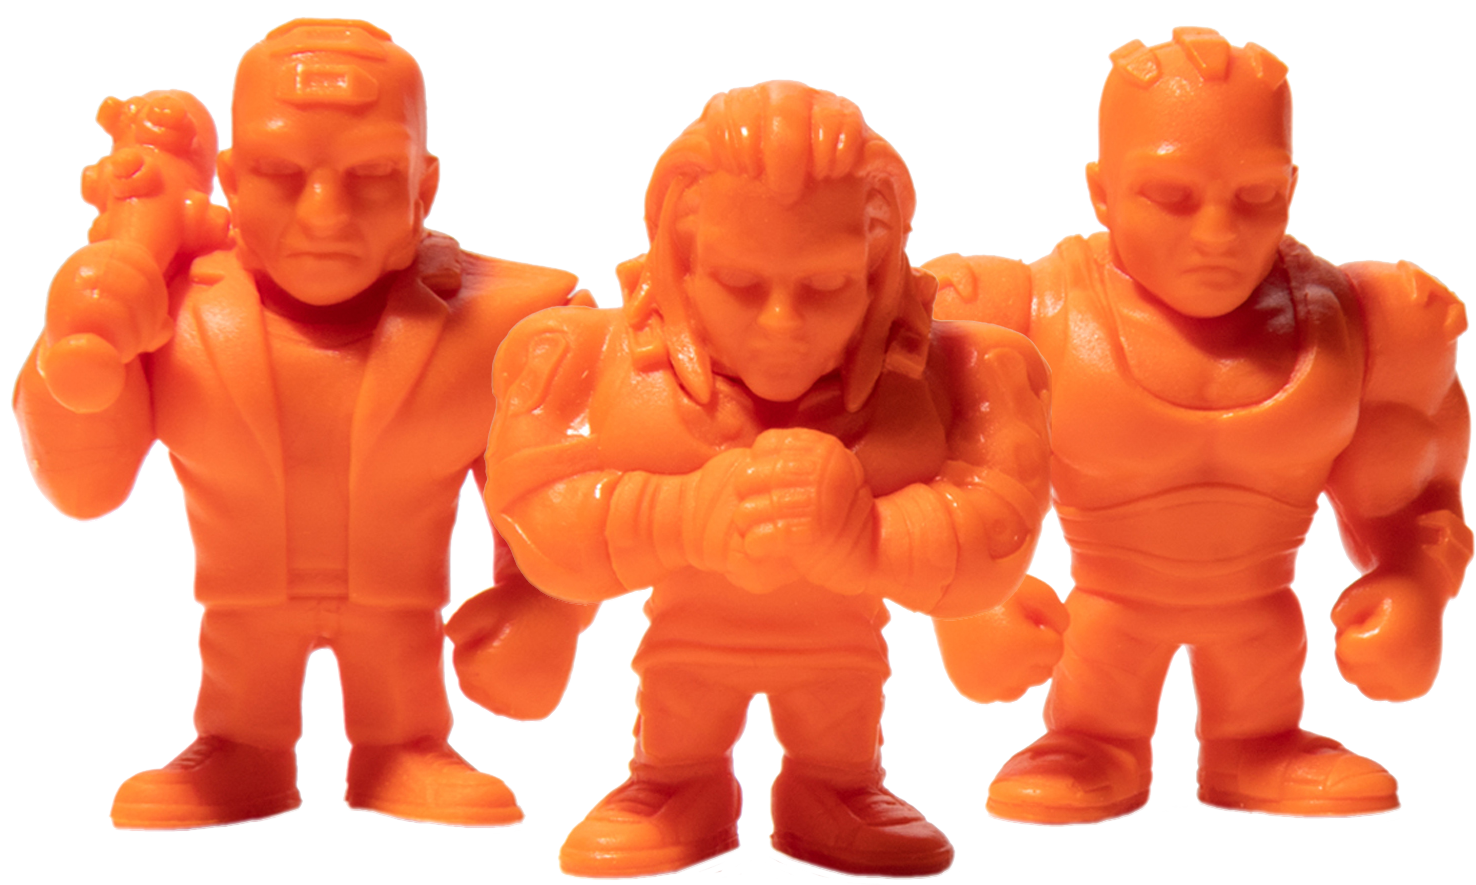 Product image of the Cyberpunk 2077 Monos Animals Set in orange